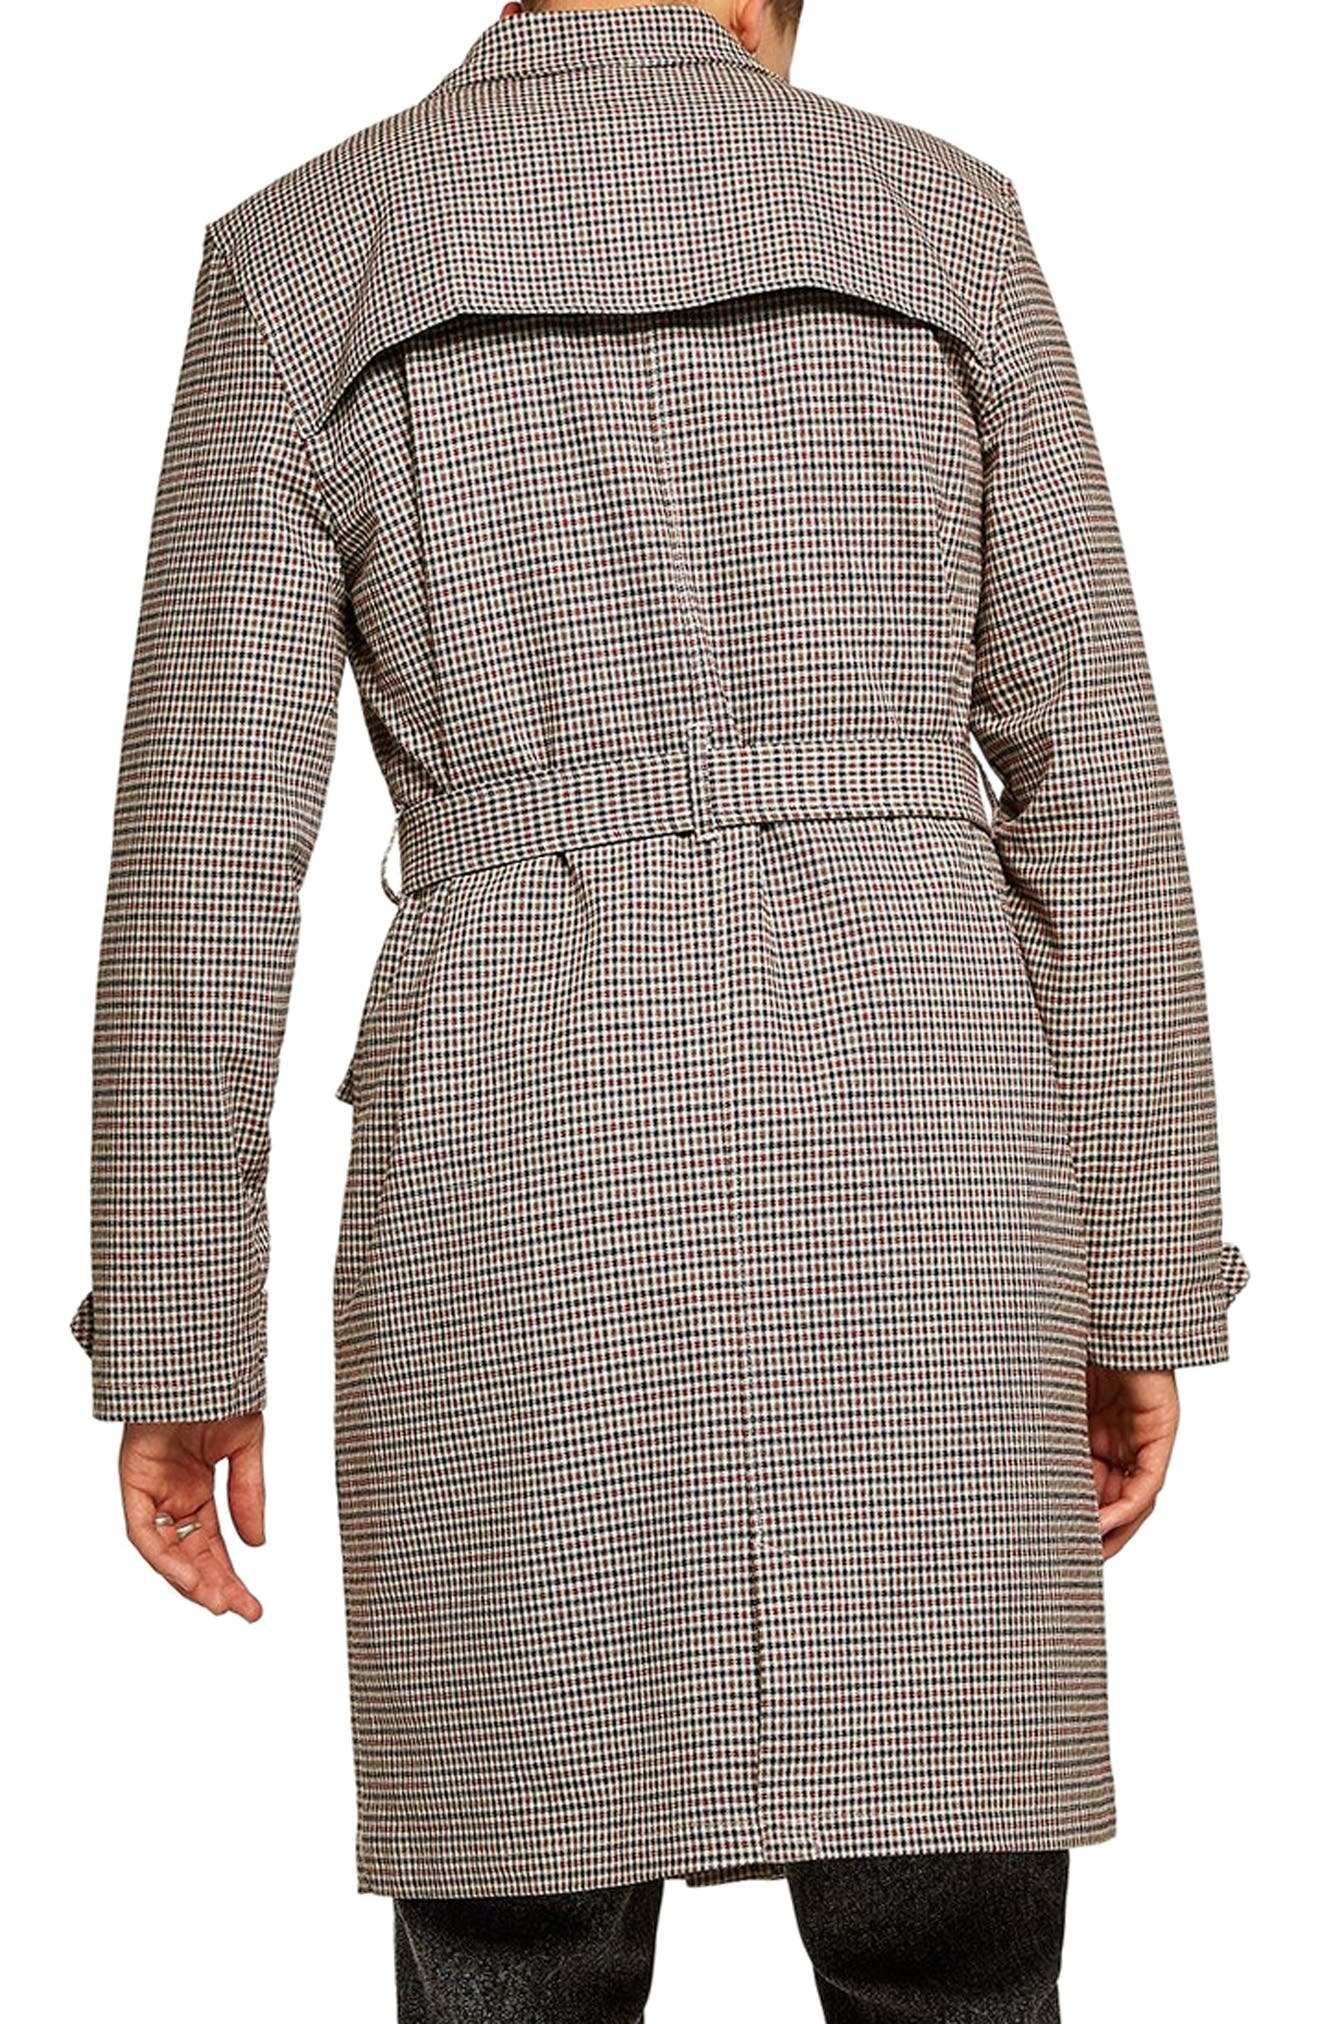 Houndstooth Trench Coat,                             Alternate thumbnail 2, color,                             BROWN MULTI